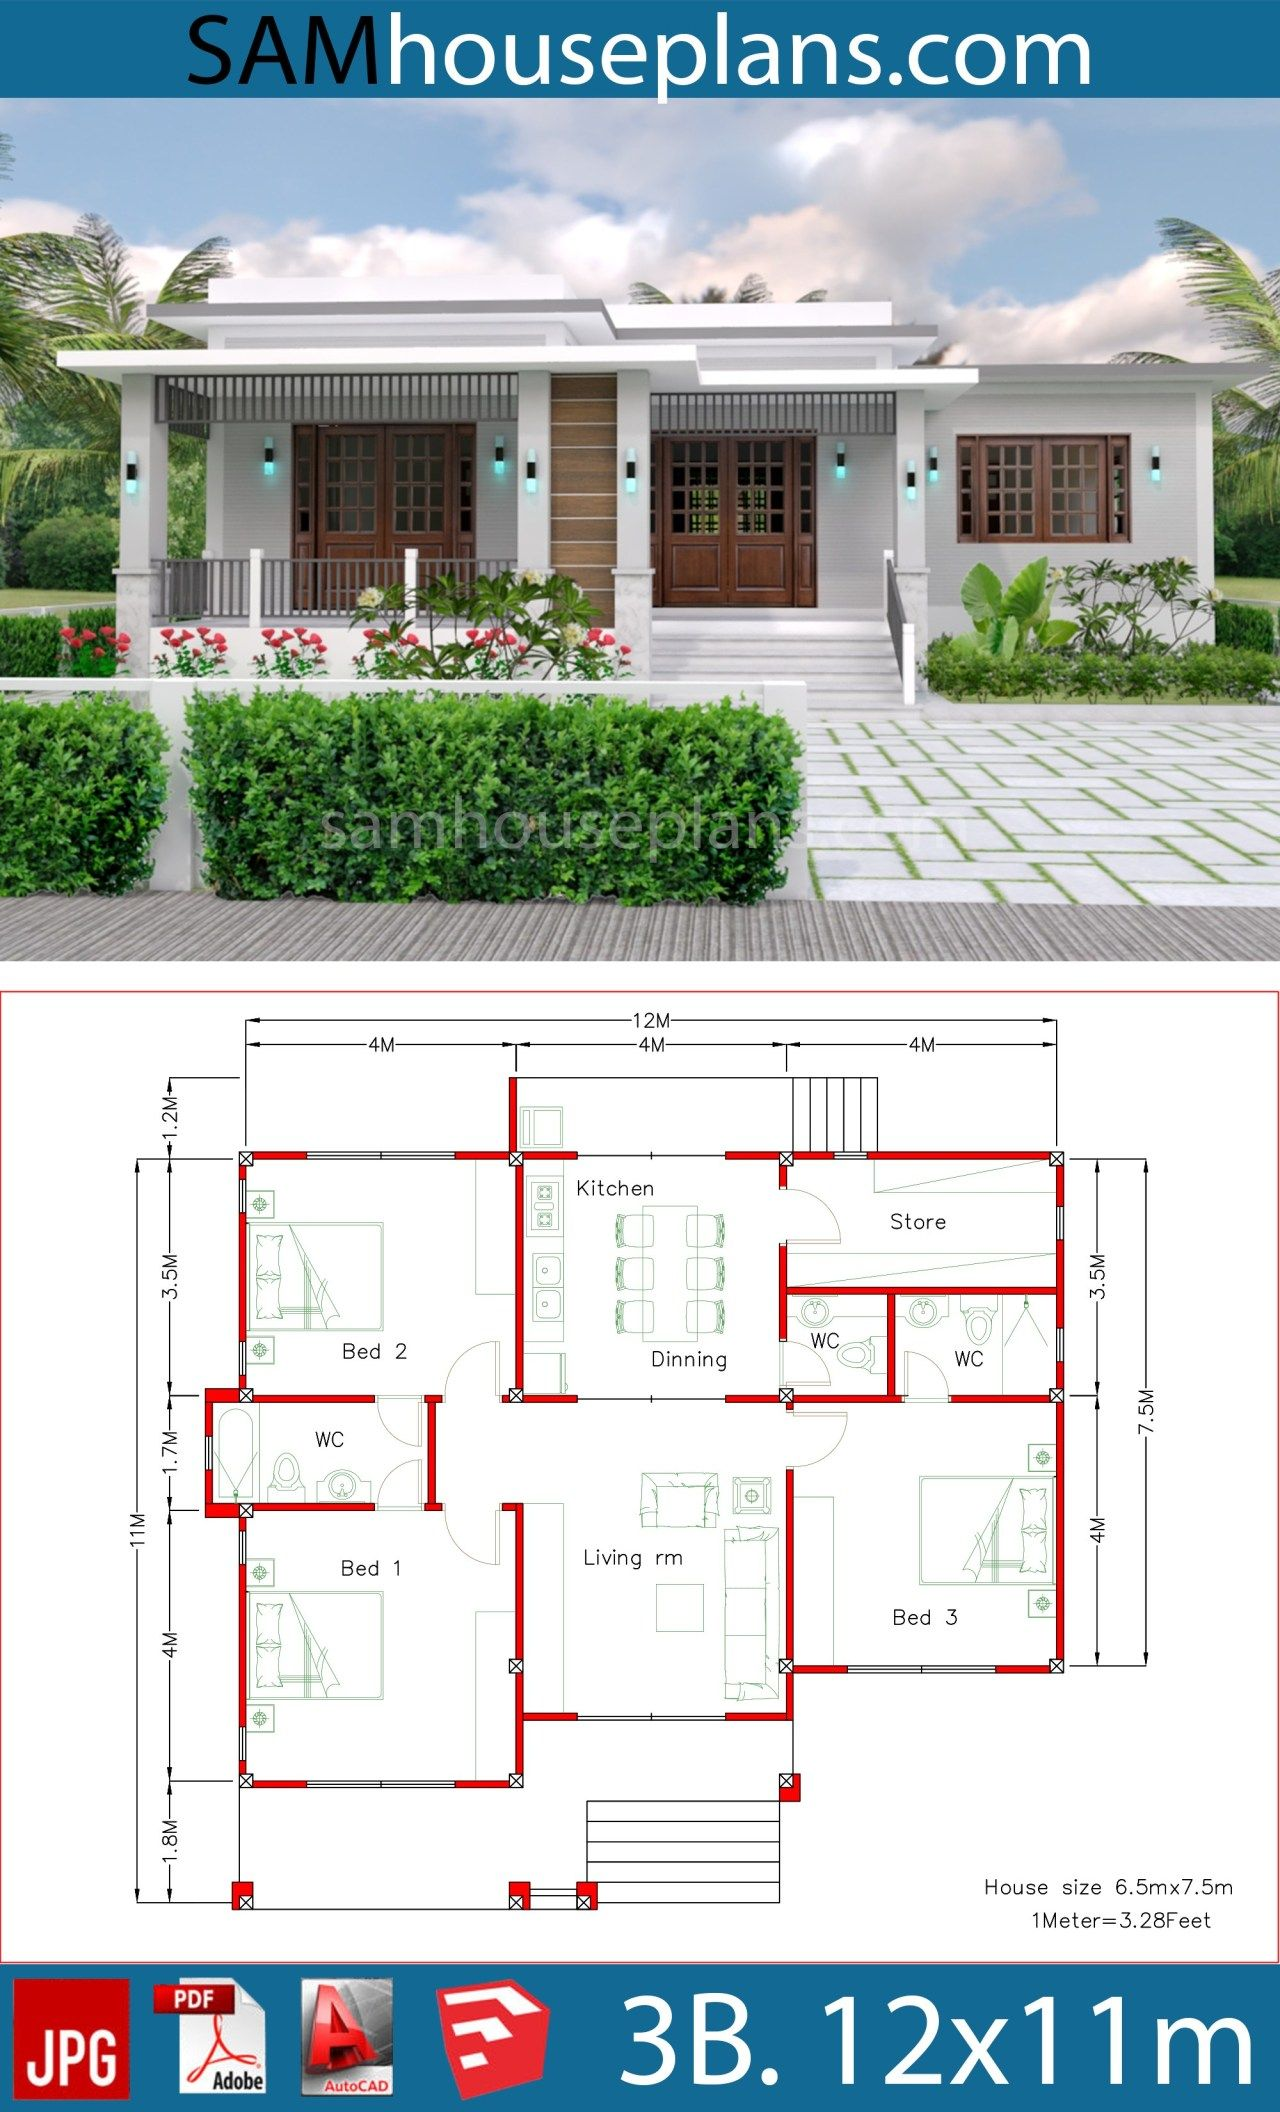 House Plans 12x11m with 3 Bedrooms